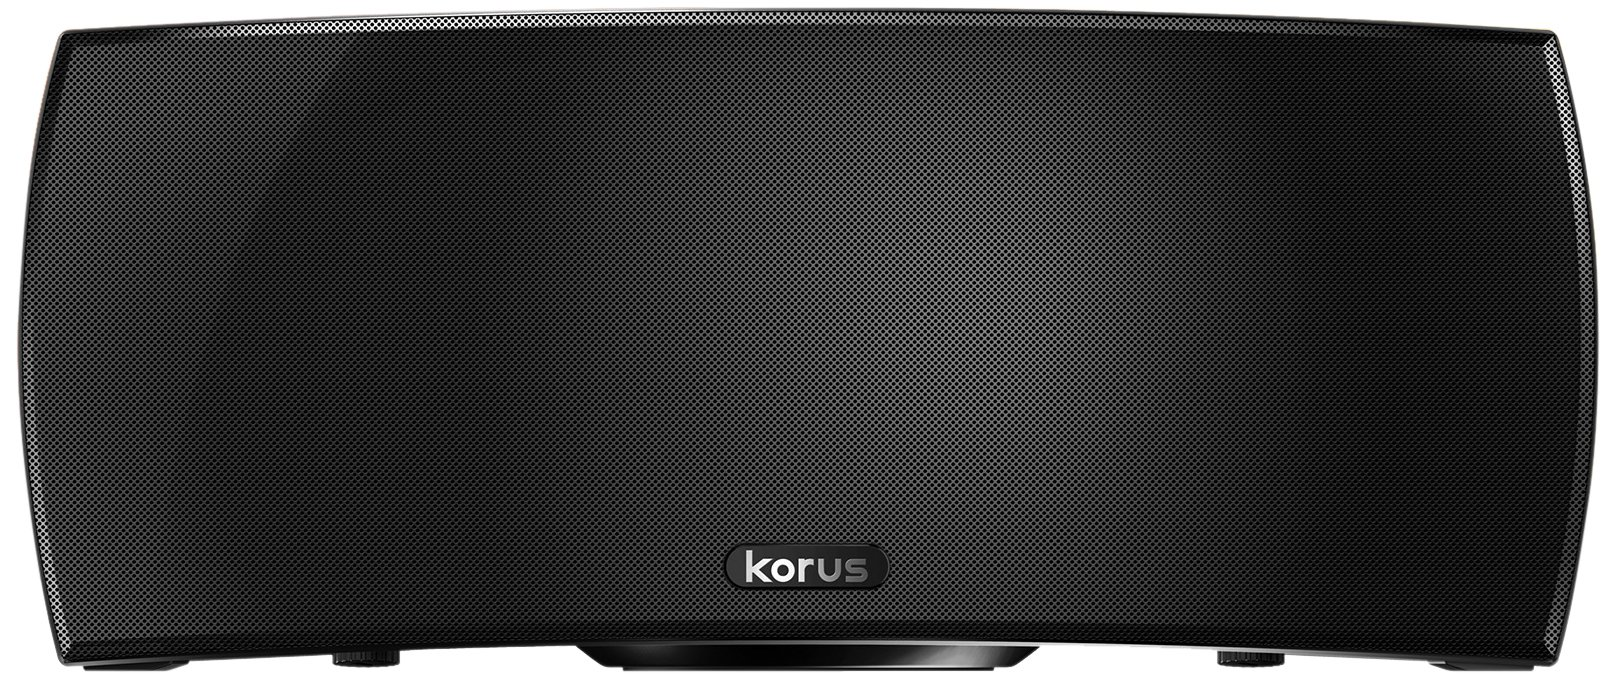 Korus Audio V600 Premium Wireless Speaker (High Gloss Black)